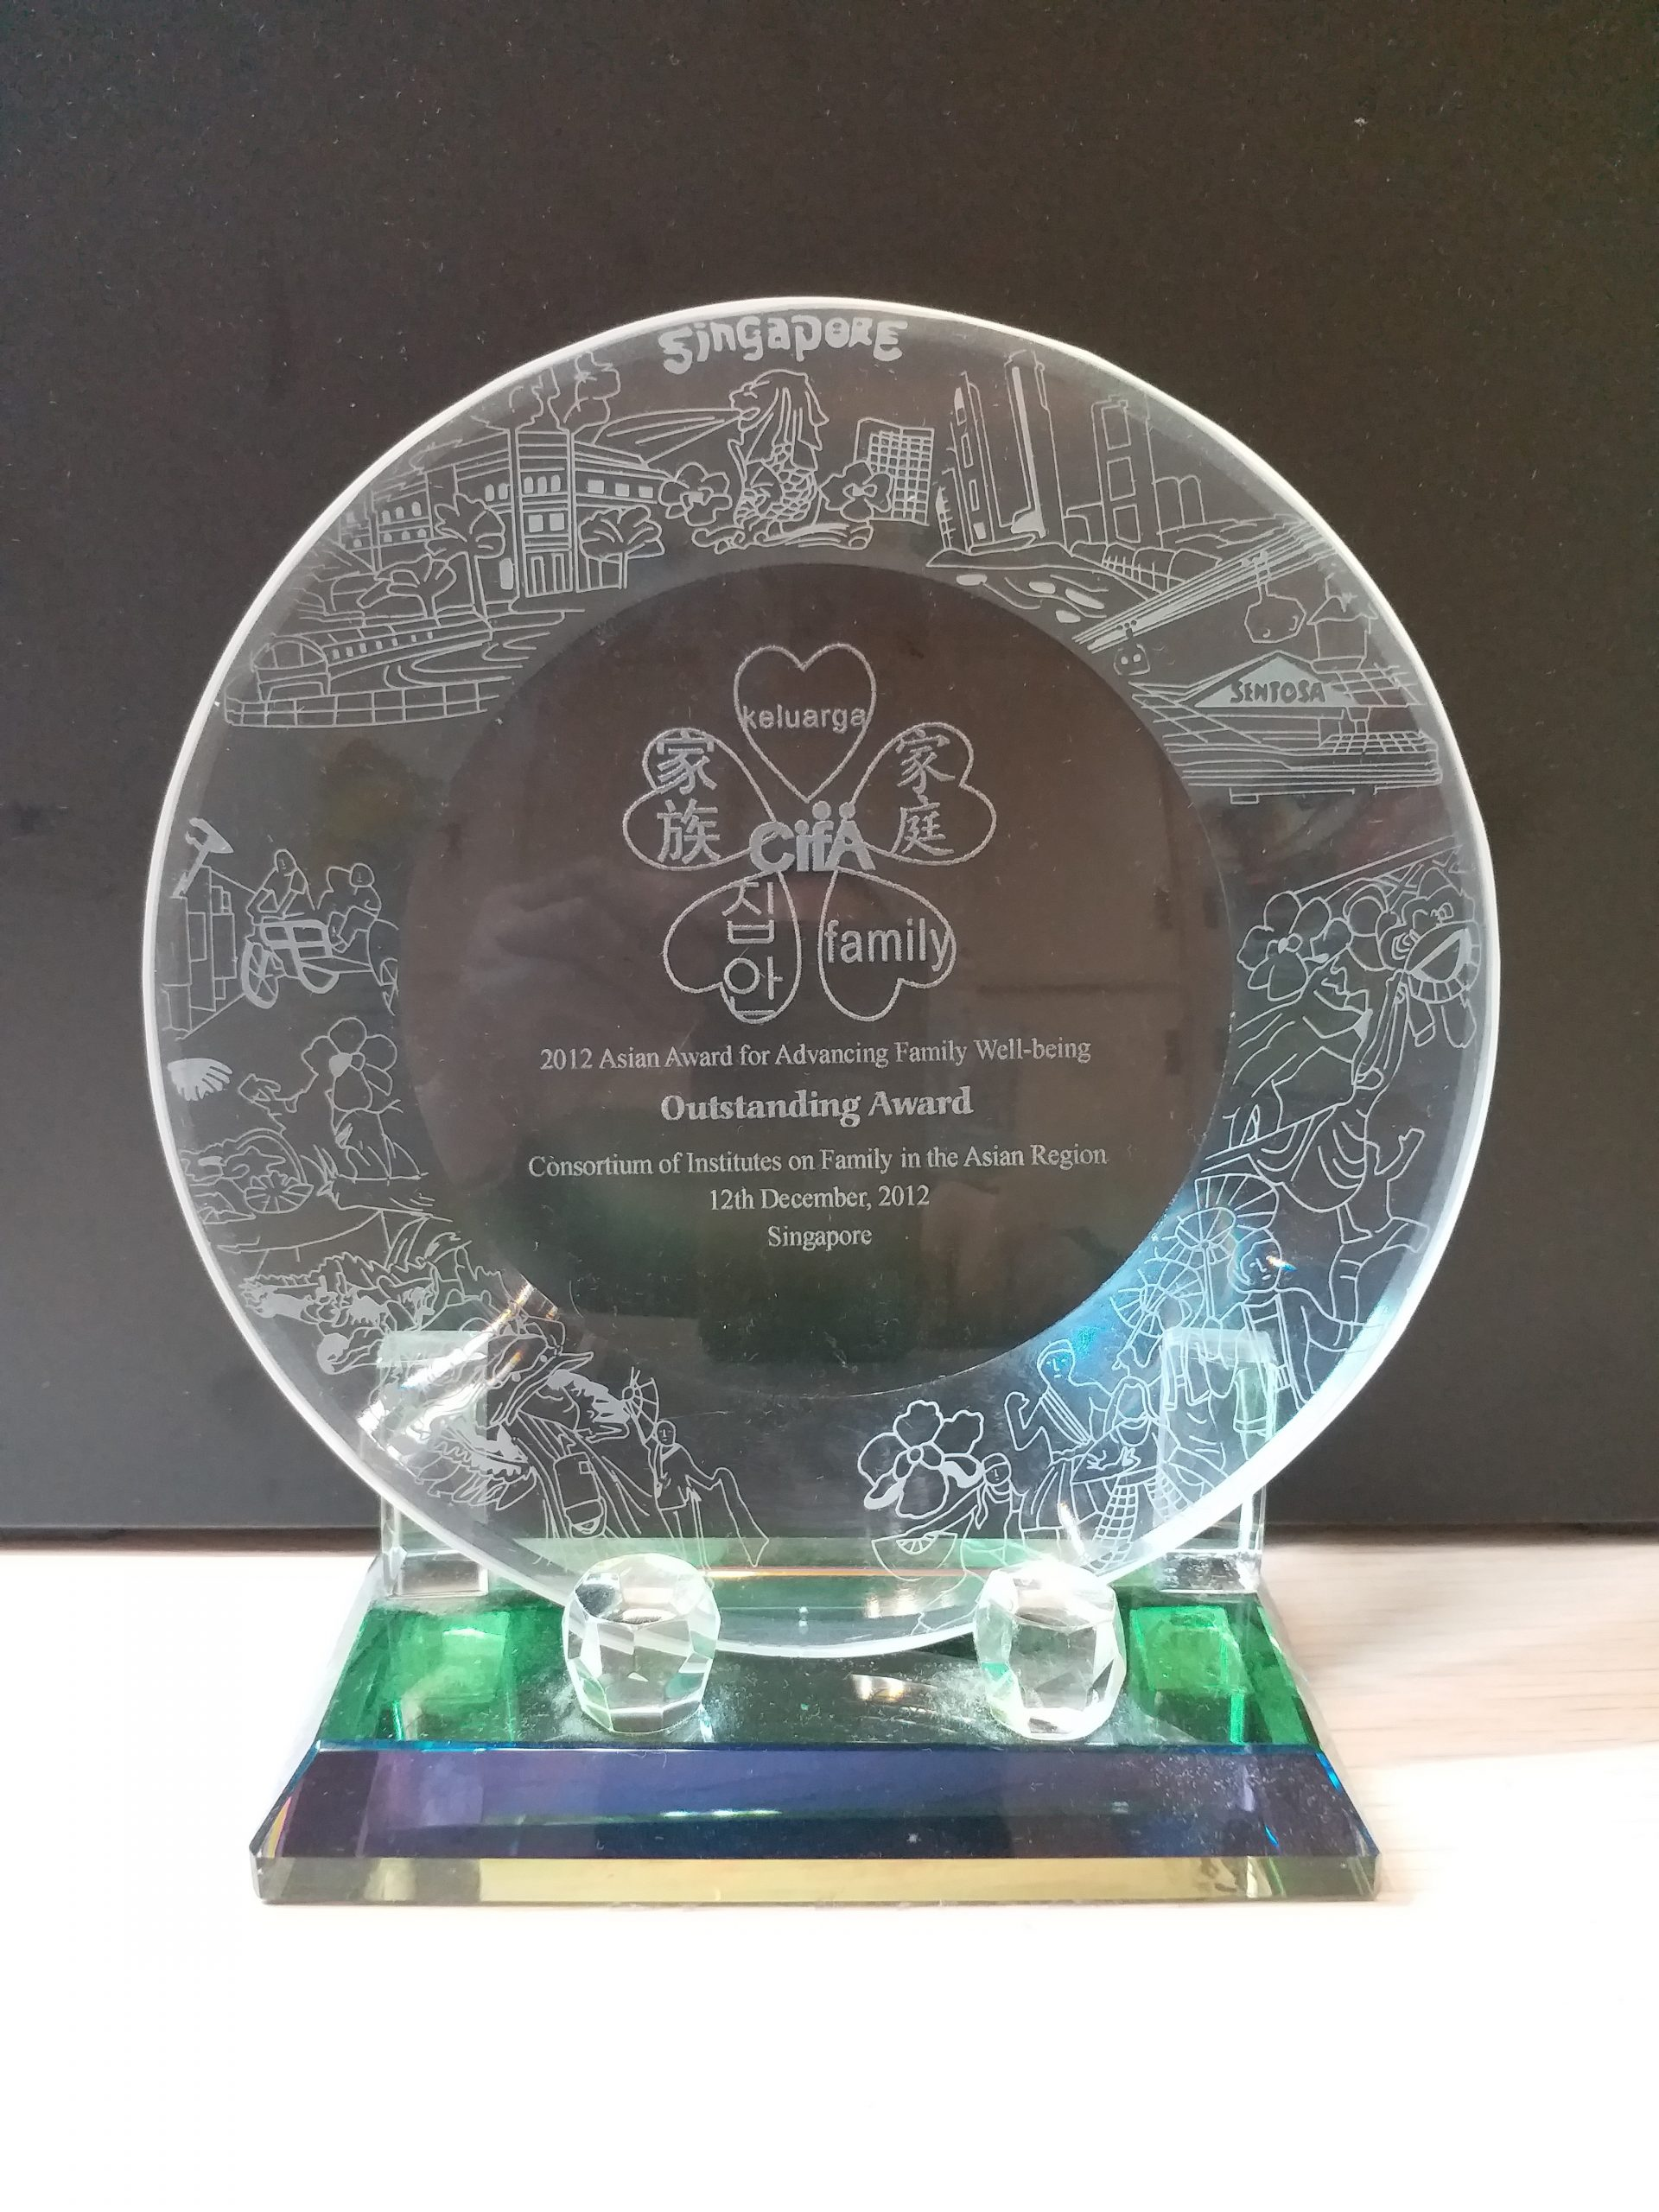 2012 Asian Award for Advancing Family Well being Outstanding Award